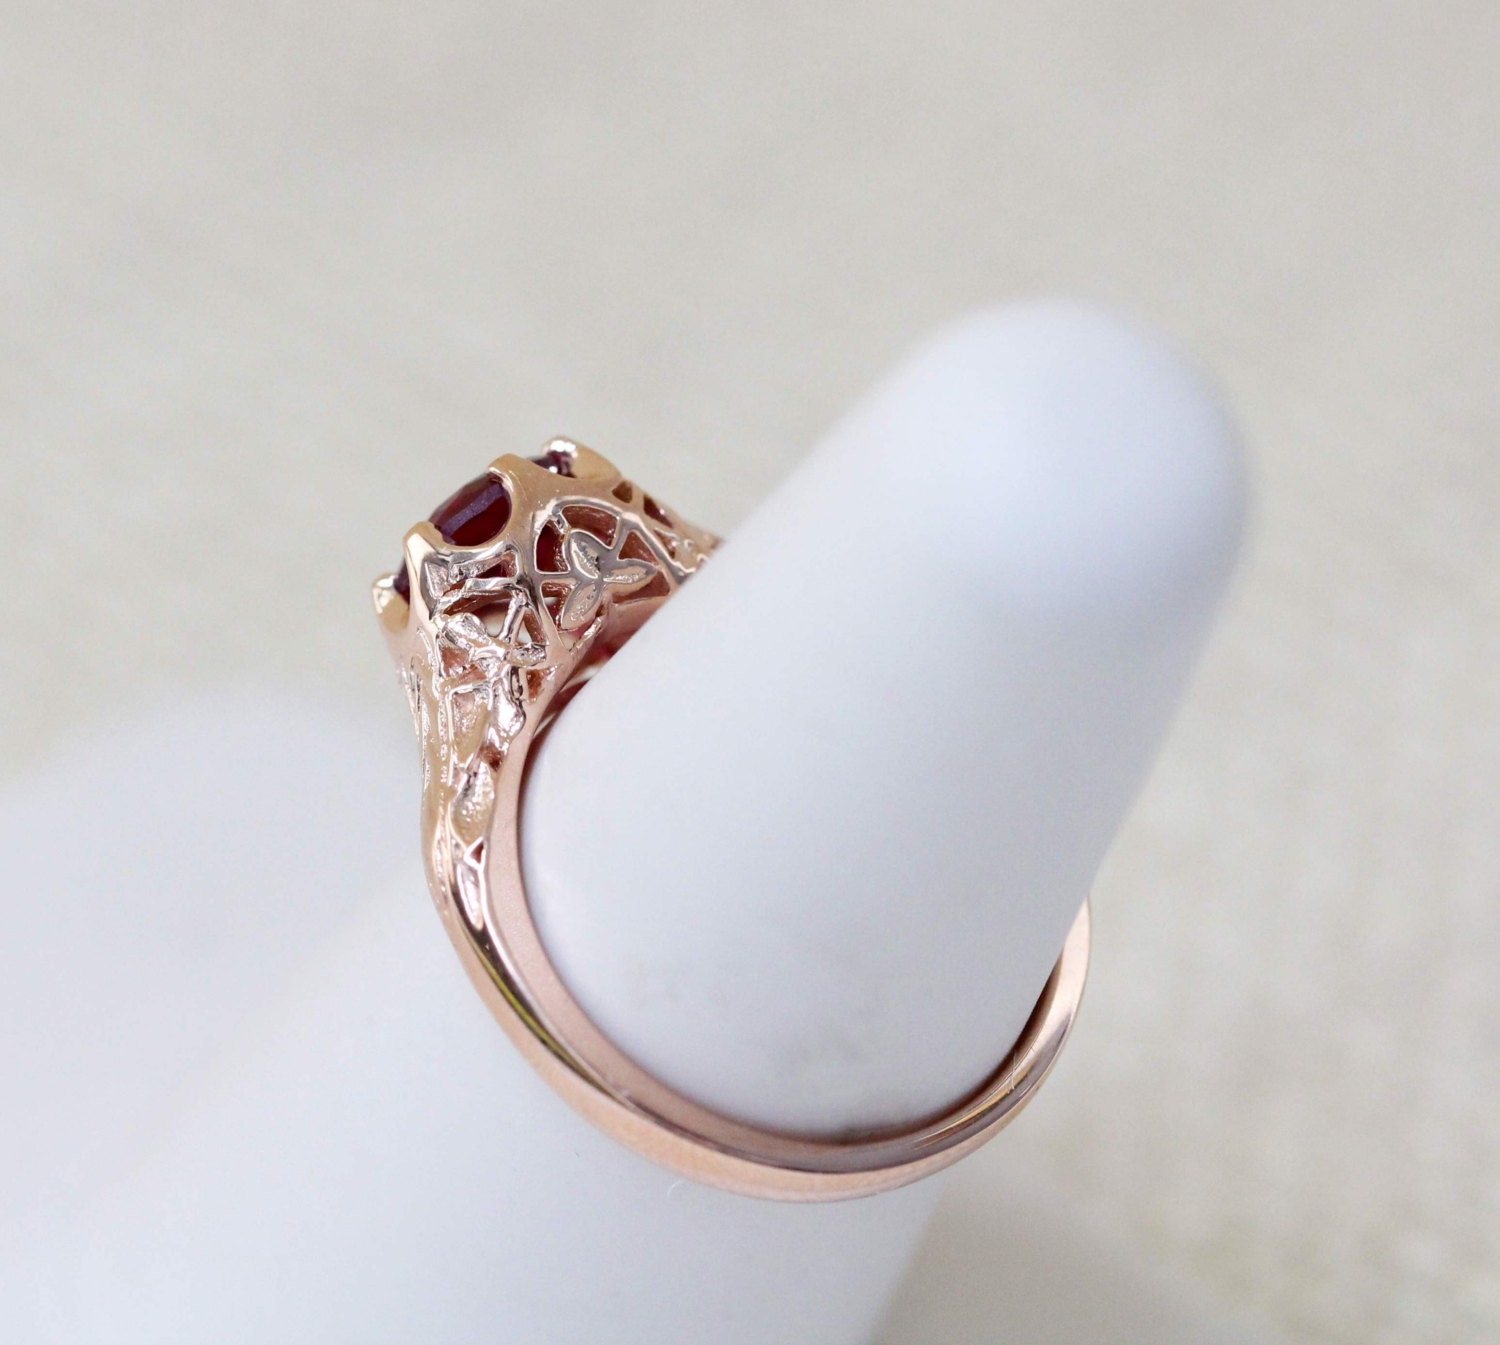 Antique Style Ruby Solitaire 14K Rose Gold Ring Antique